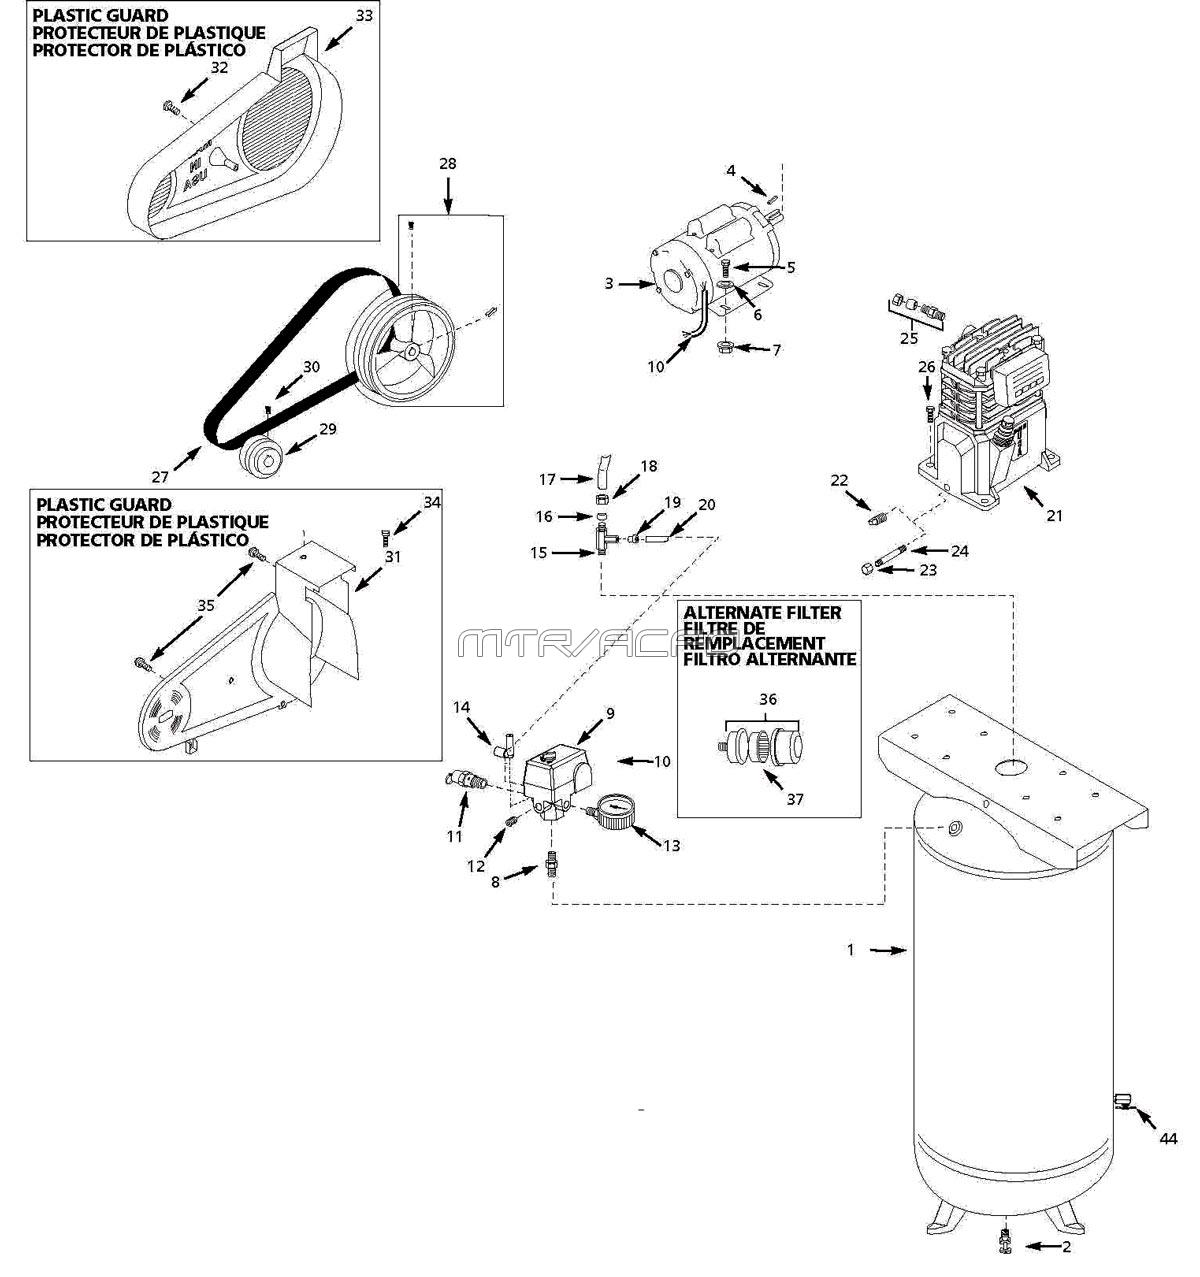 husky vt631403aj air compressor parts rh mastertoolrepair com Husky Riding Mower Deck Diagram Husky Riding Mower Deck Diagram